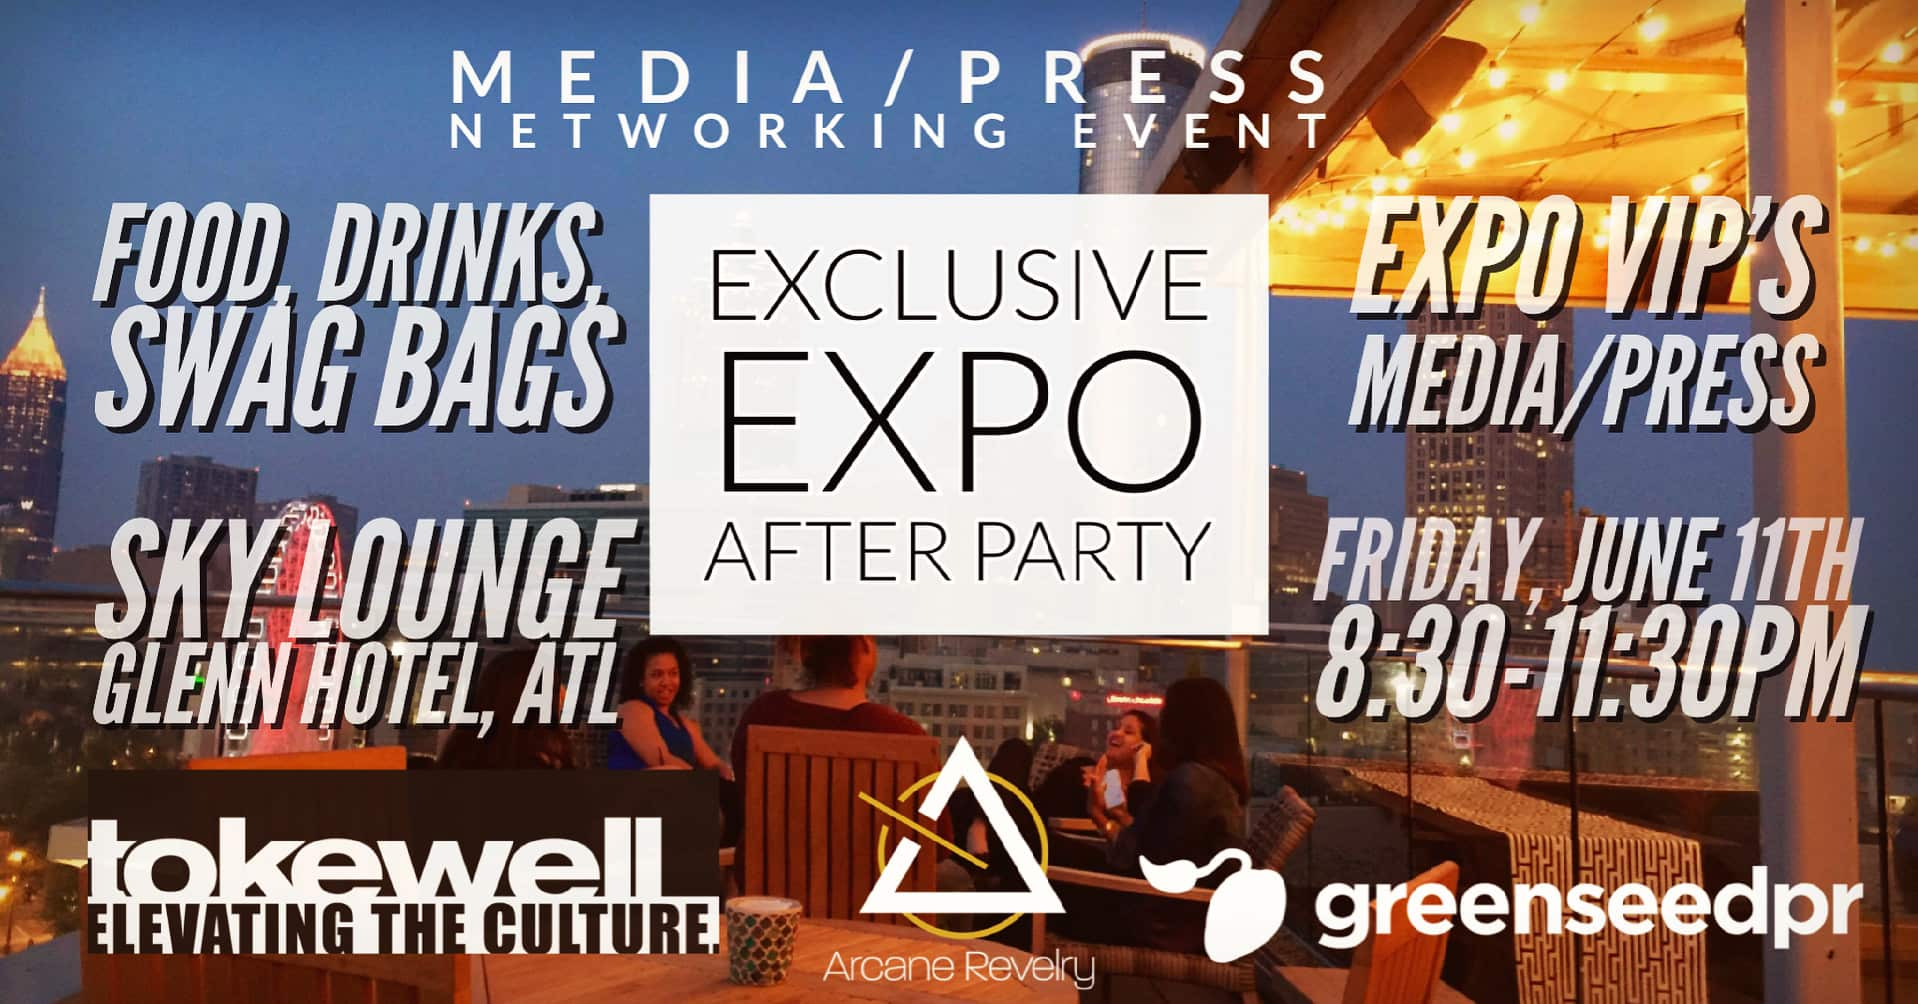 Premier After Party & Networking Social for VIP/PRESS/MEDIA CBD/HEMP Expo